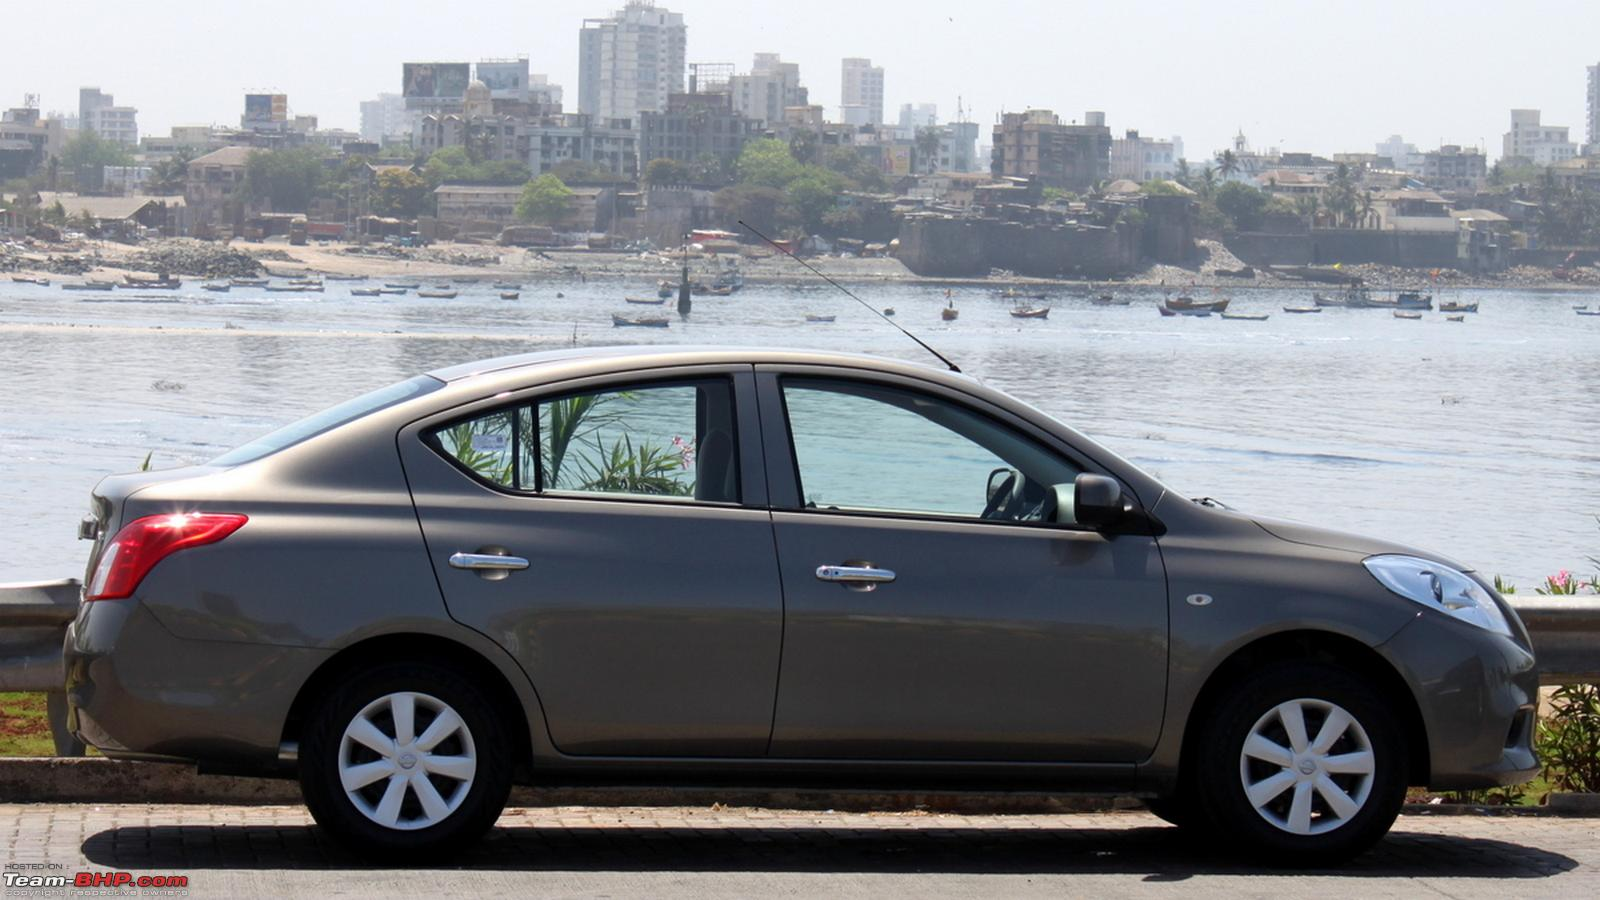 NISSAN SUNNY Rentals in Bangalore